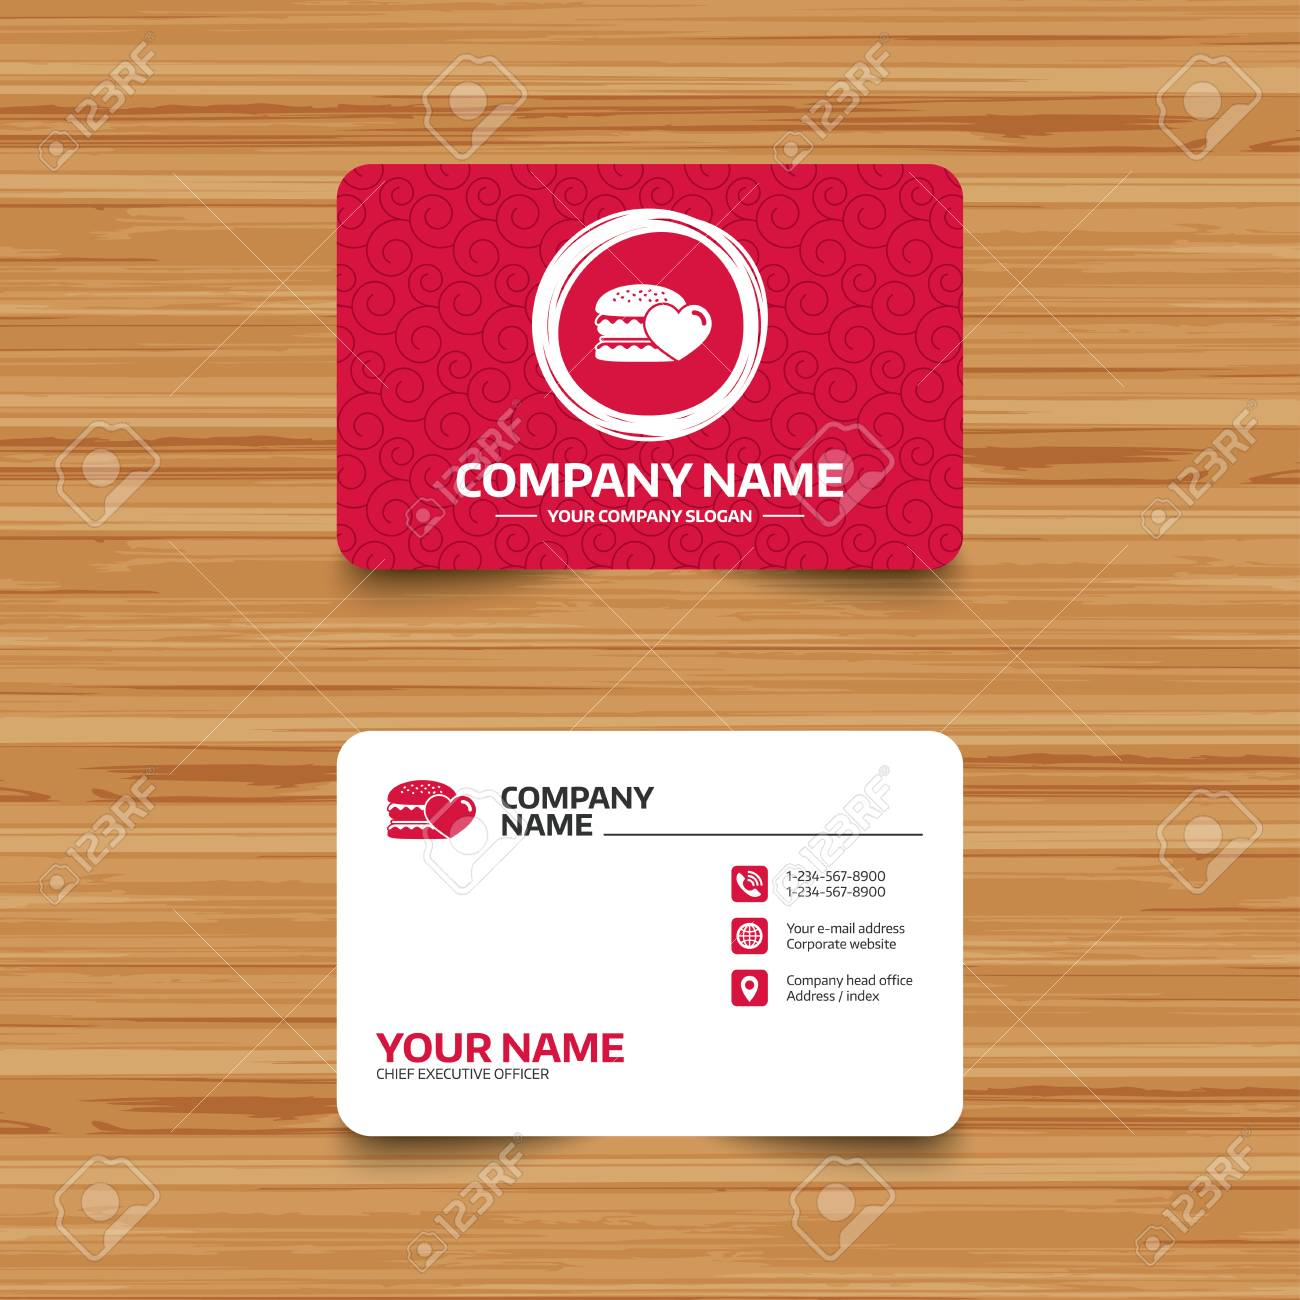 Business card template with texture hamburger icon burger food business card template with texture hamburger icon burger food symbol cheeseburger sandwich sign wajeb Image collections